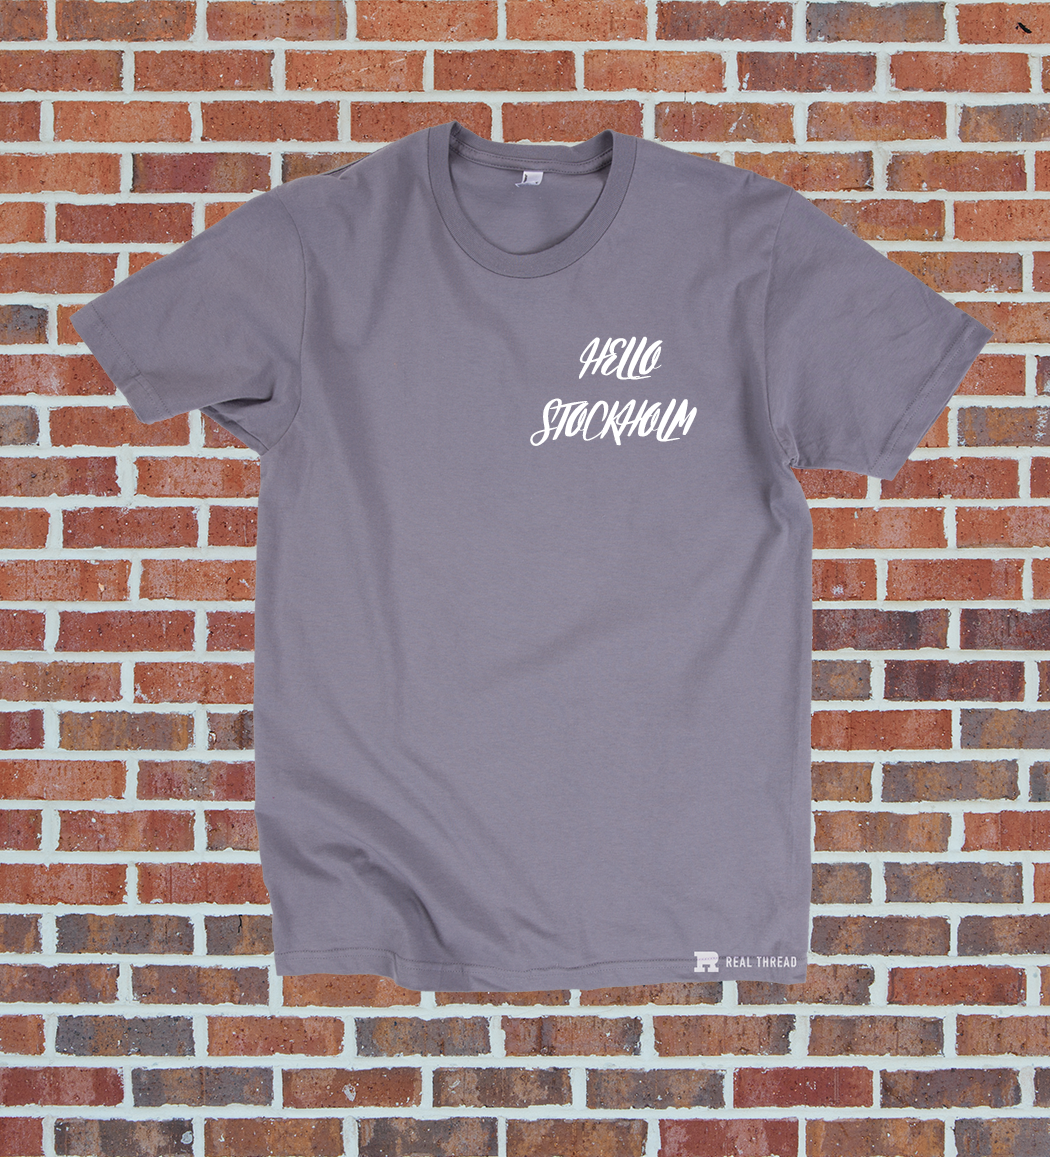 Using Fonts Effectively In Your T-Shirt Designs (Plus 20 Free Font